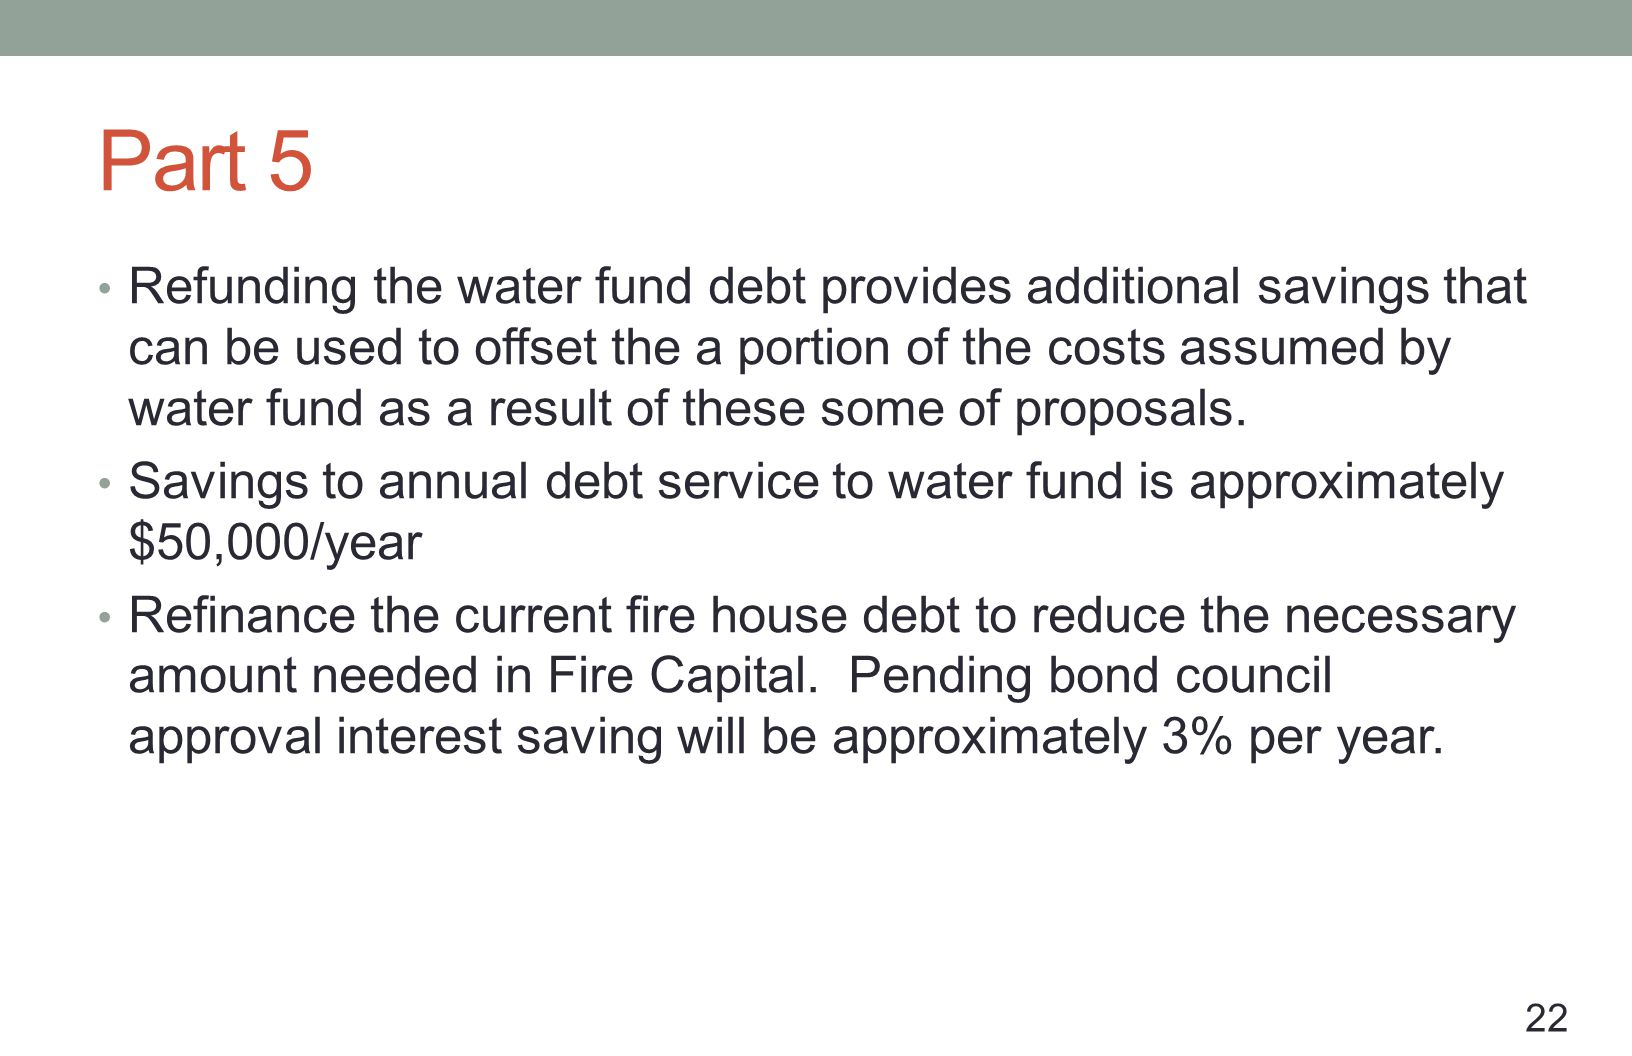 Part 5 Refunding the water fund debt provides additional savings that can be used to offset the a portion of the costs assumed by water fund as a resu